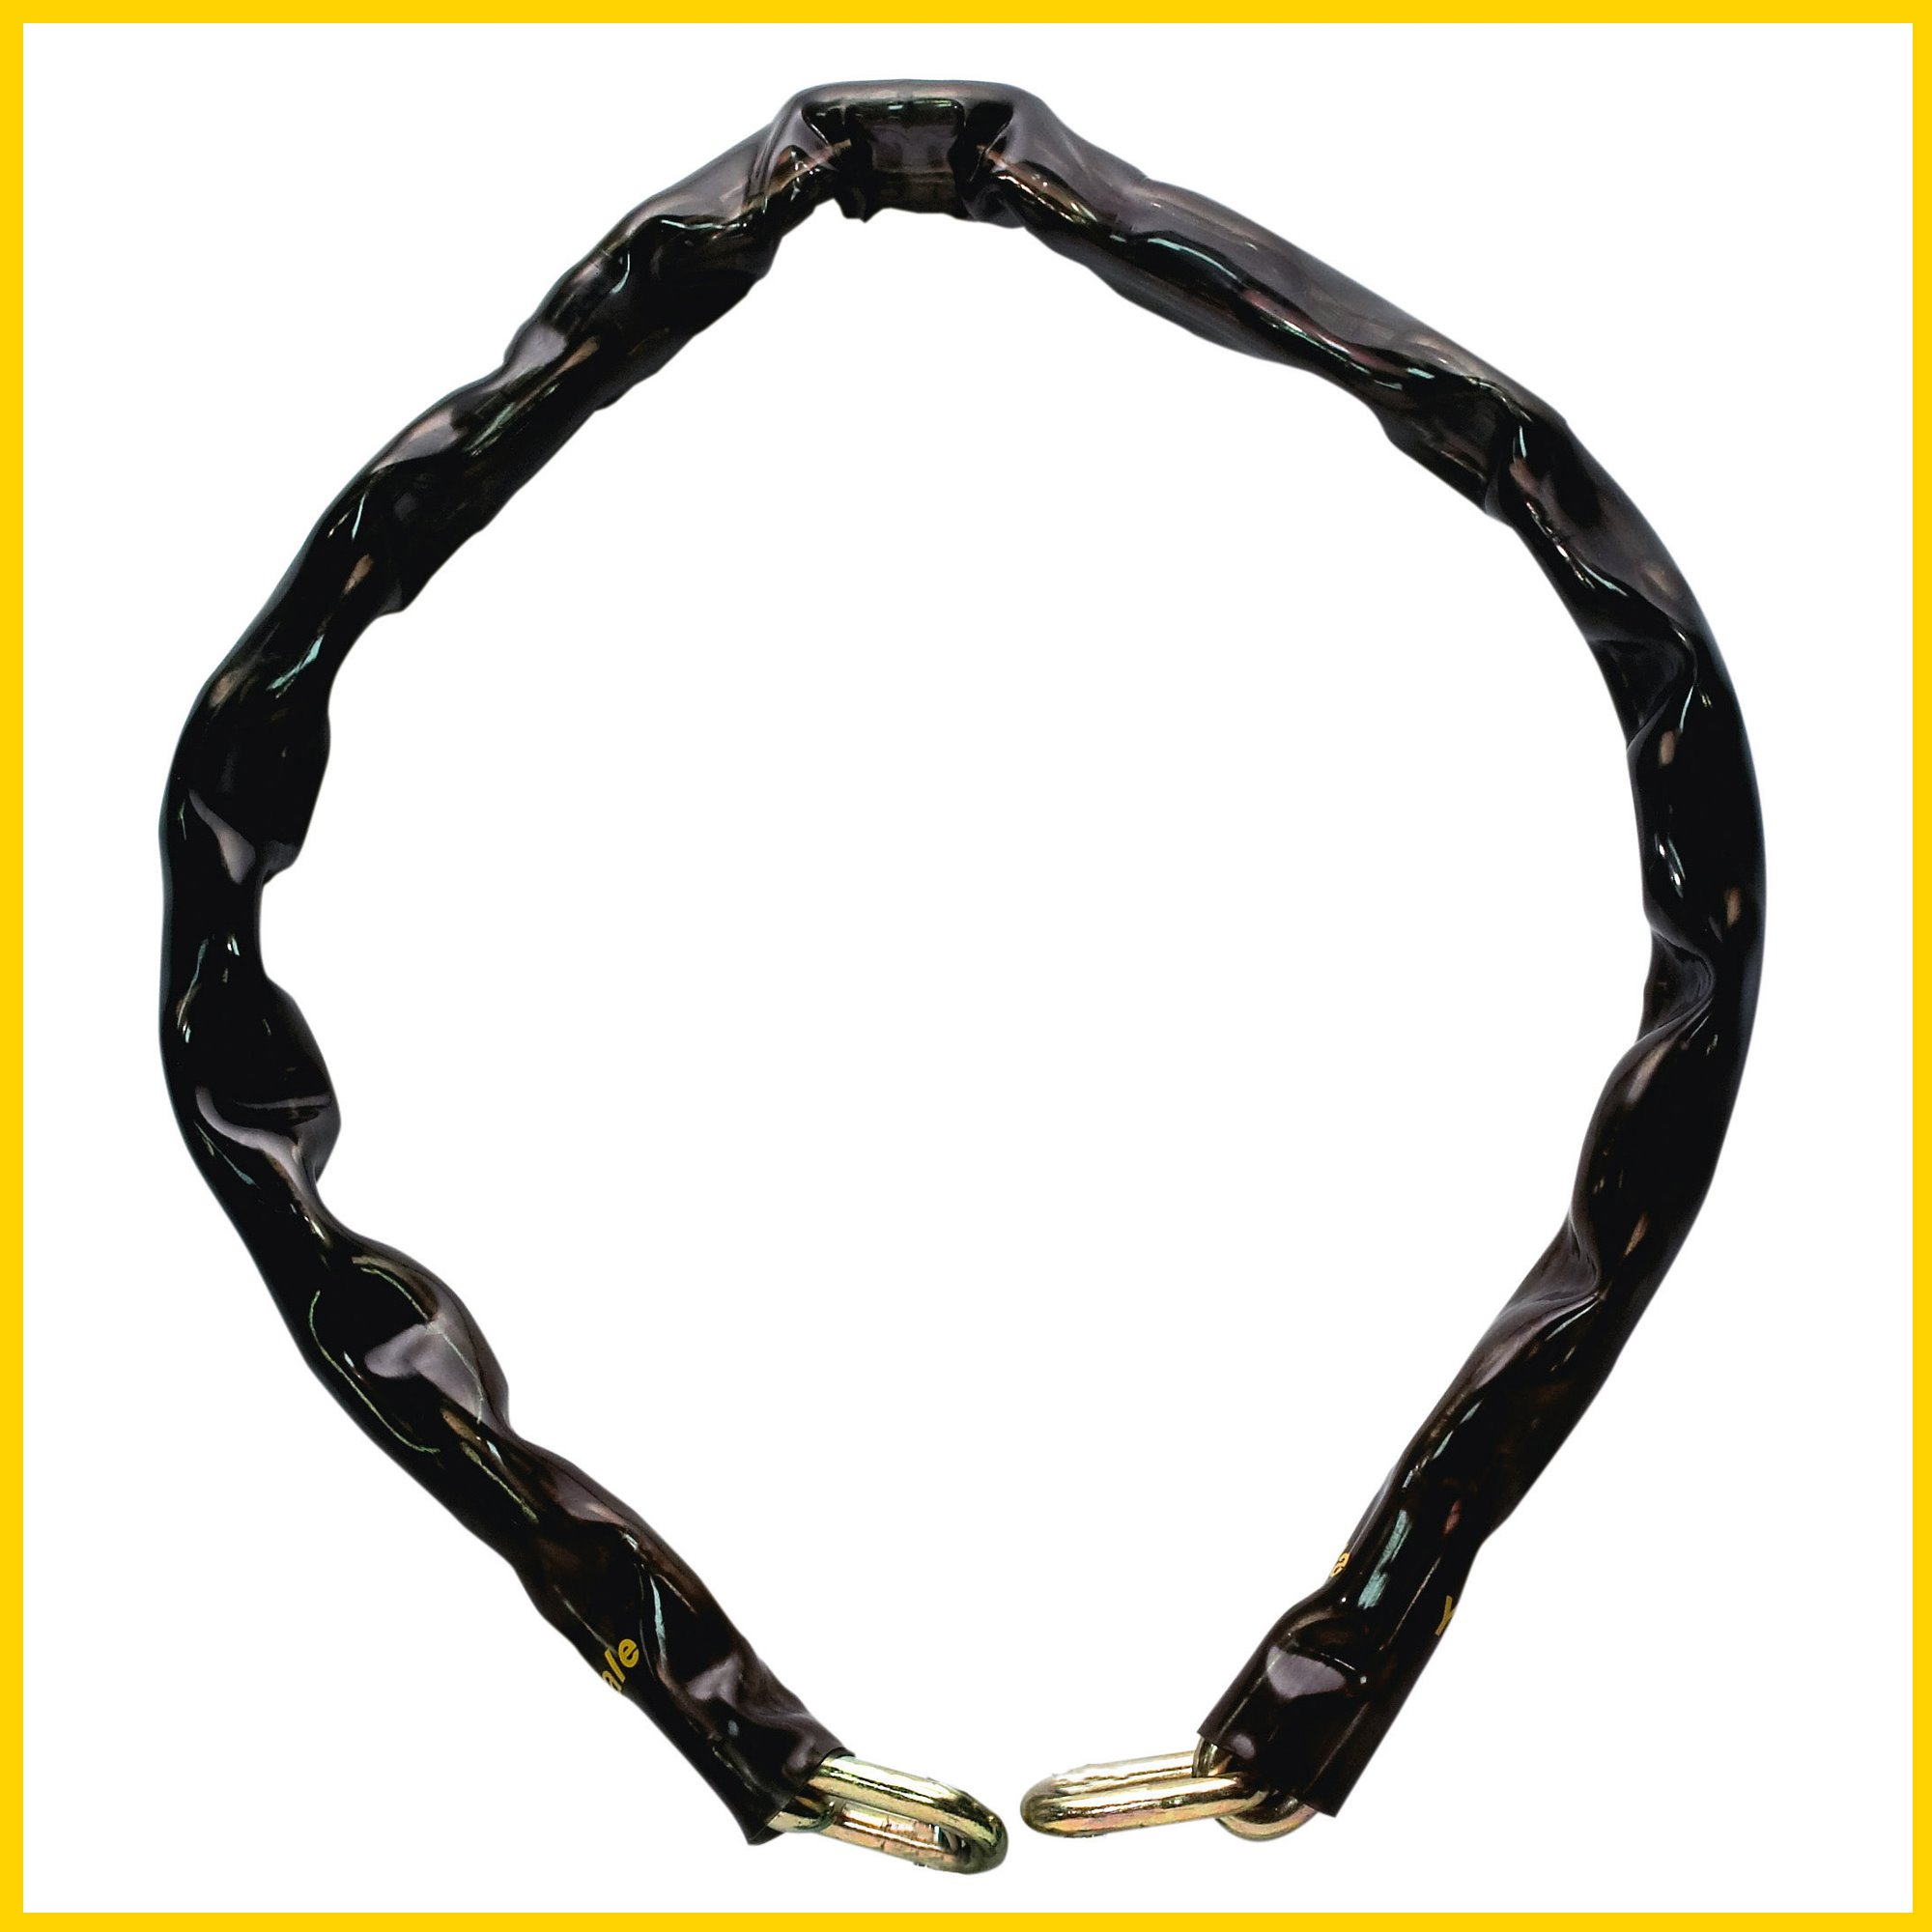 B-CHAIN - Heavy Duty Steel Chain